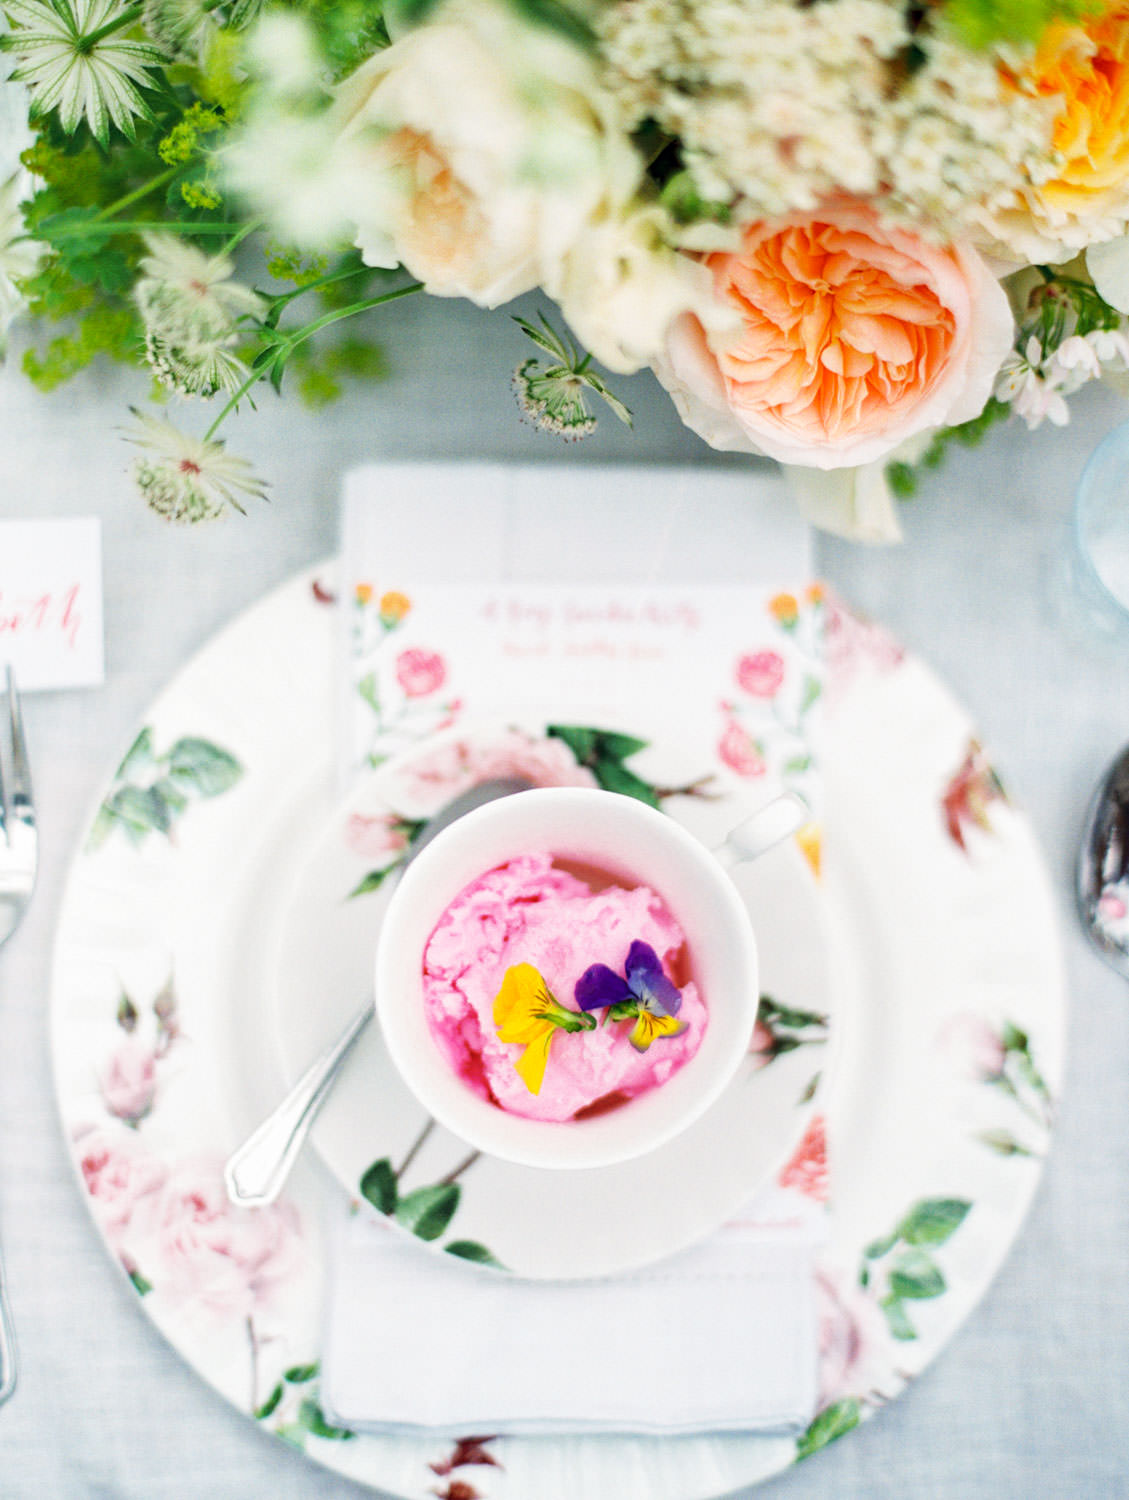 Pink sorbet appetizer. Pink, yellow, orange, muted teal, and white floral themed tablescape for lunch at David Austin Roses by Joy Proctor, Bows and Arrows flowers, Rosie Harbottle menus on the Flutter Magazine Retreat in the Cotswolds